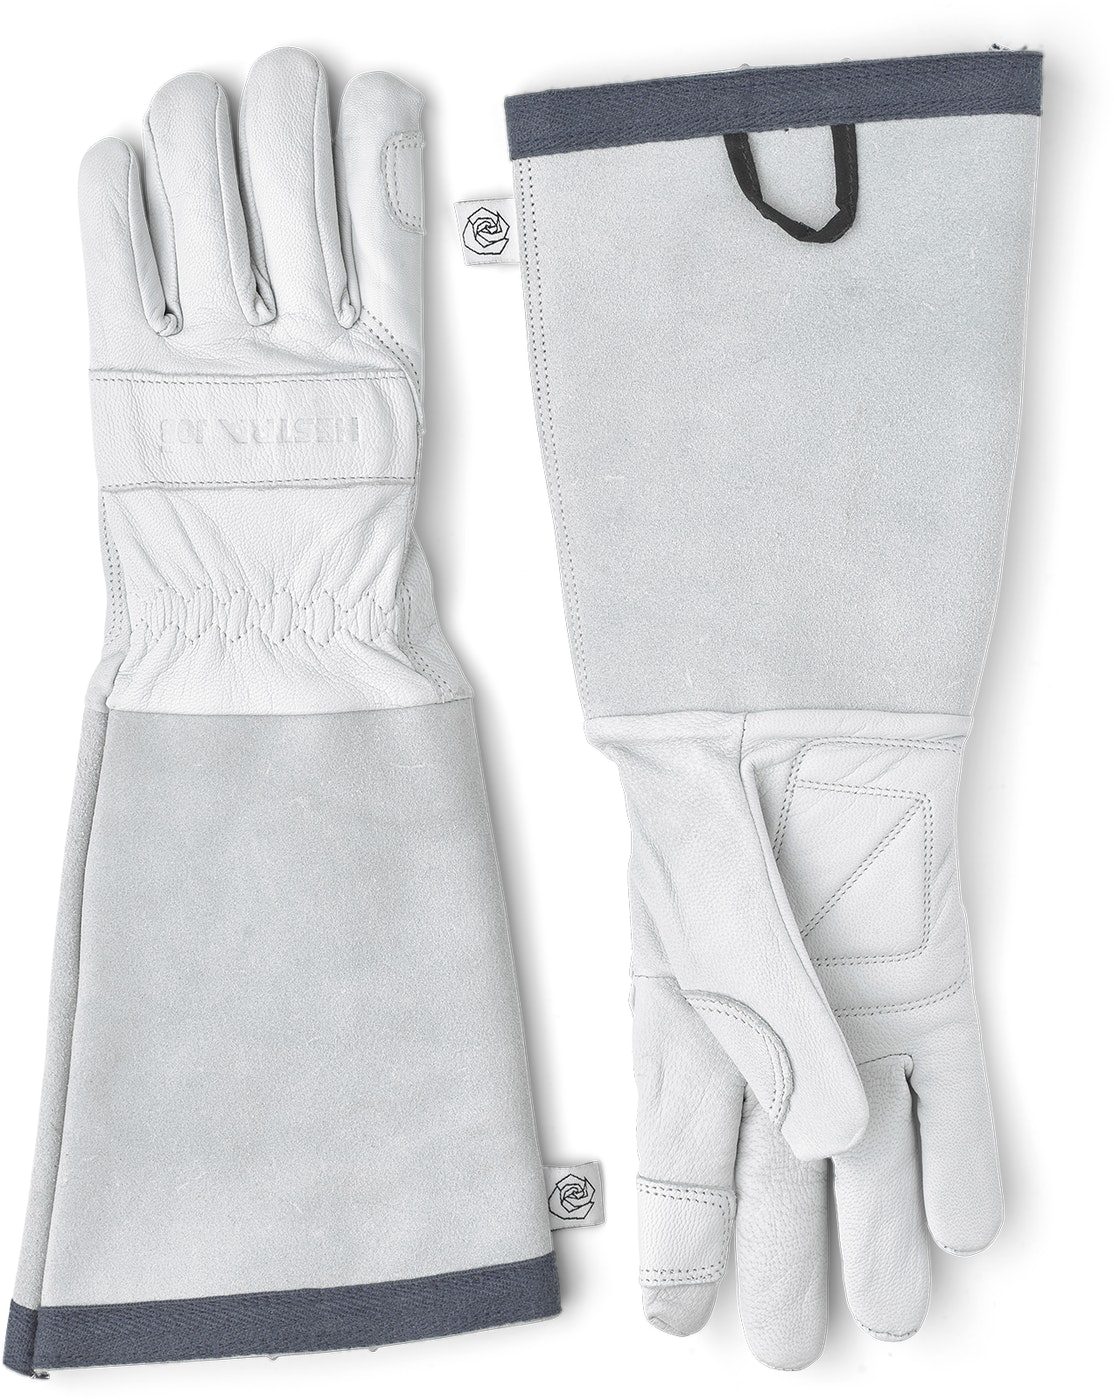 Product image for 73410 Garden Rose Glove